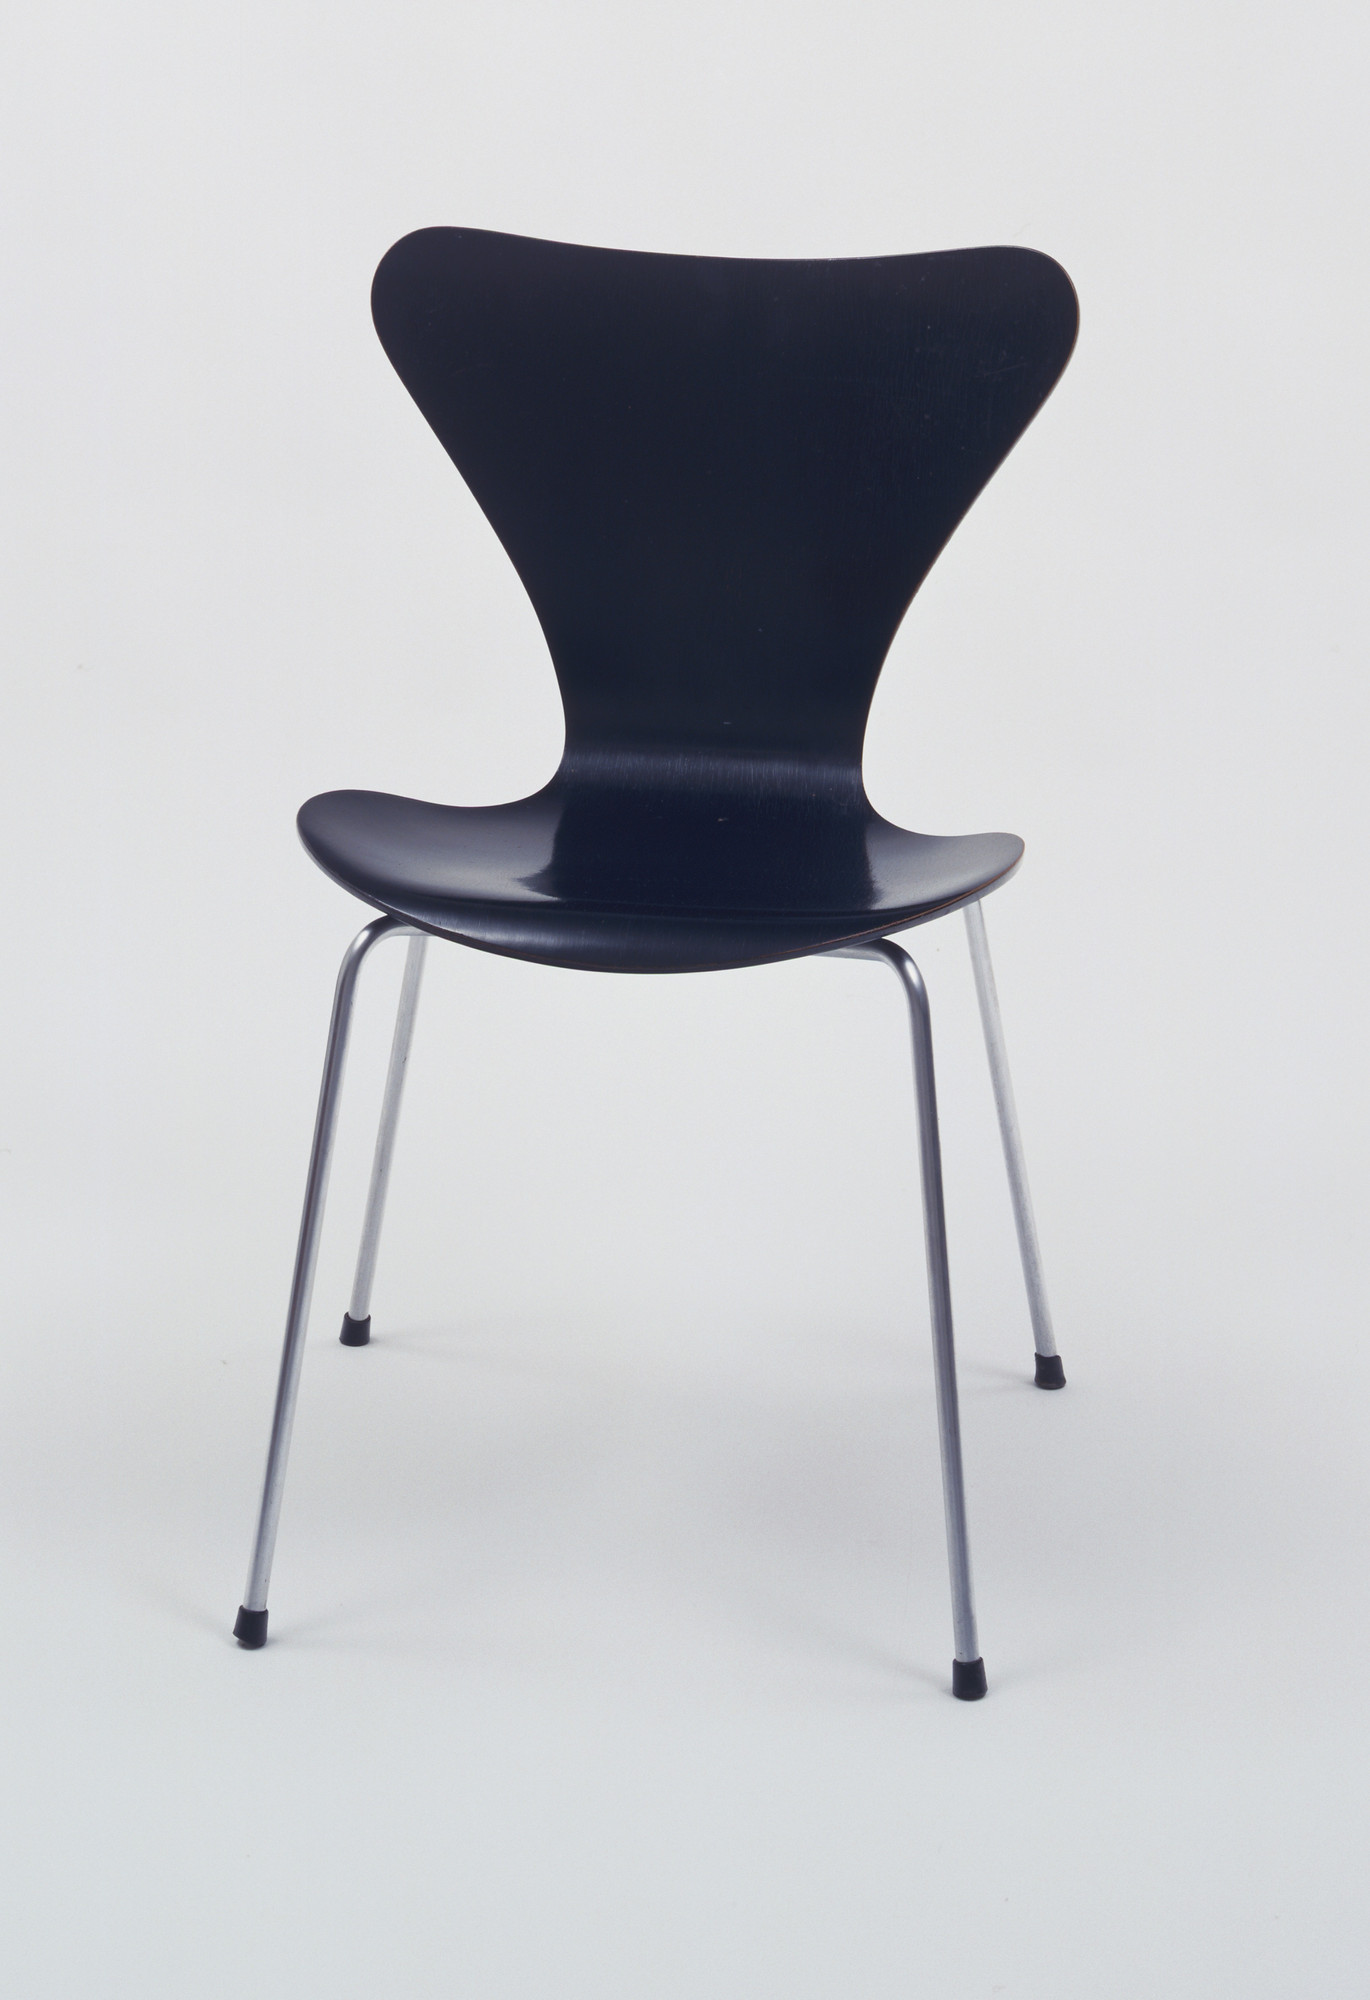 Arne Jacobsen Chair Series 7 3107 C 1952 Moma